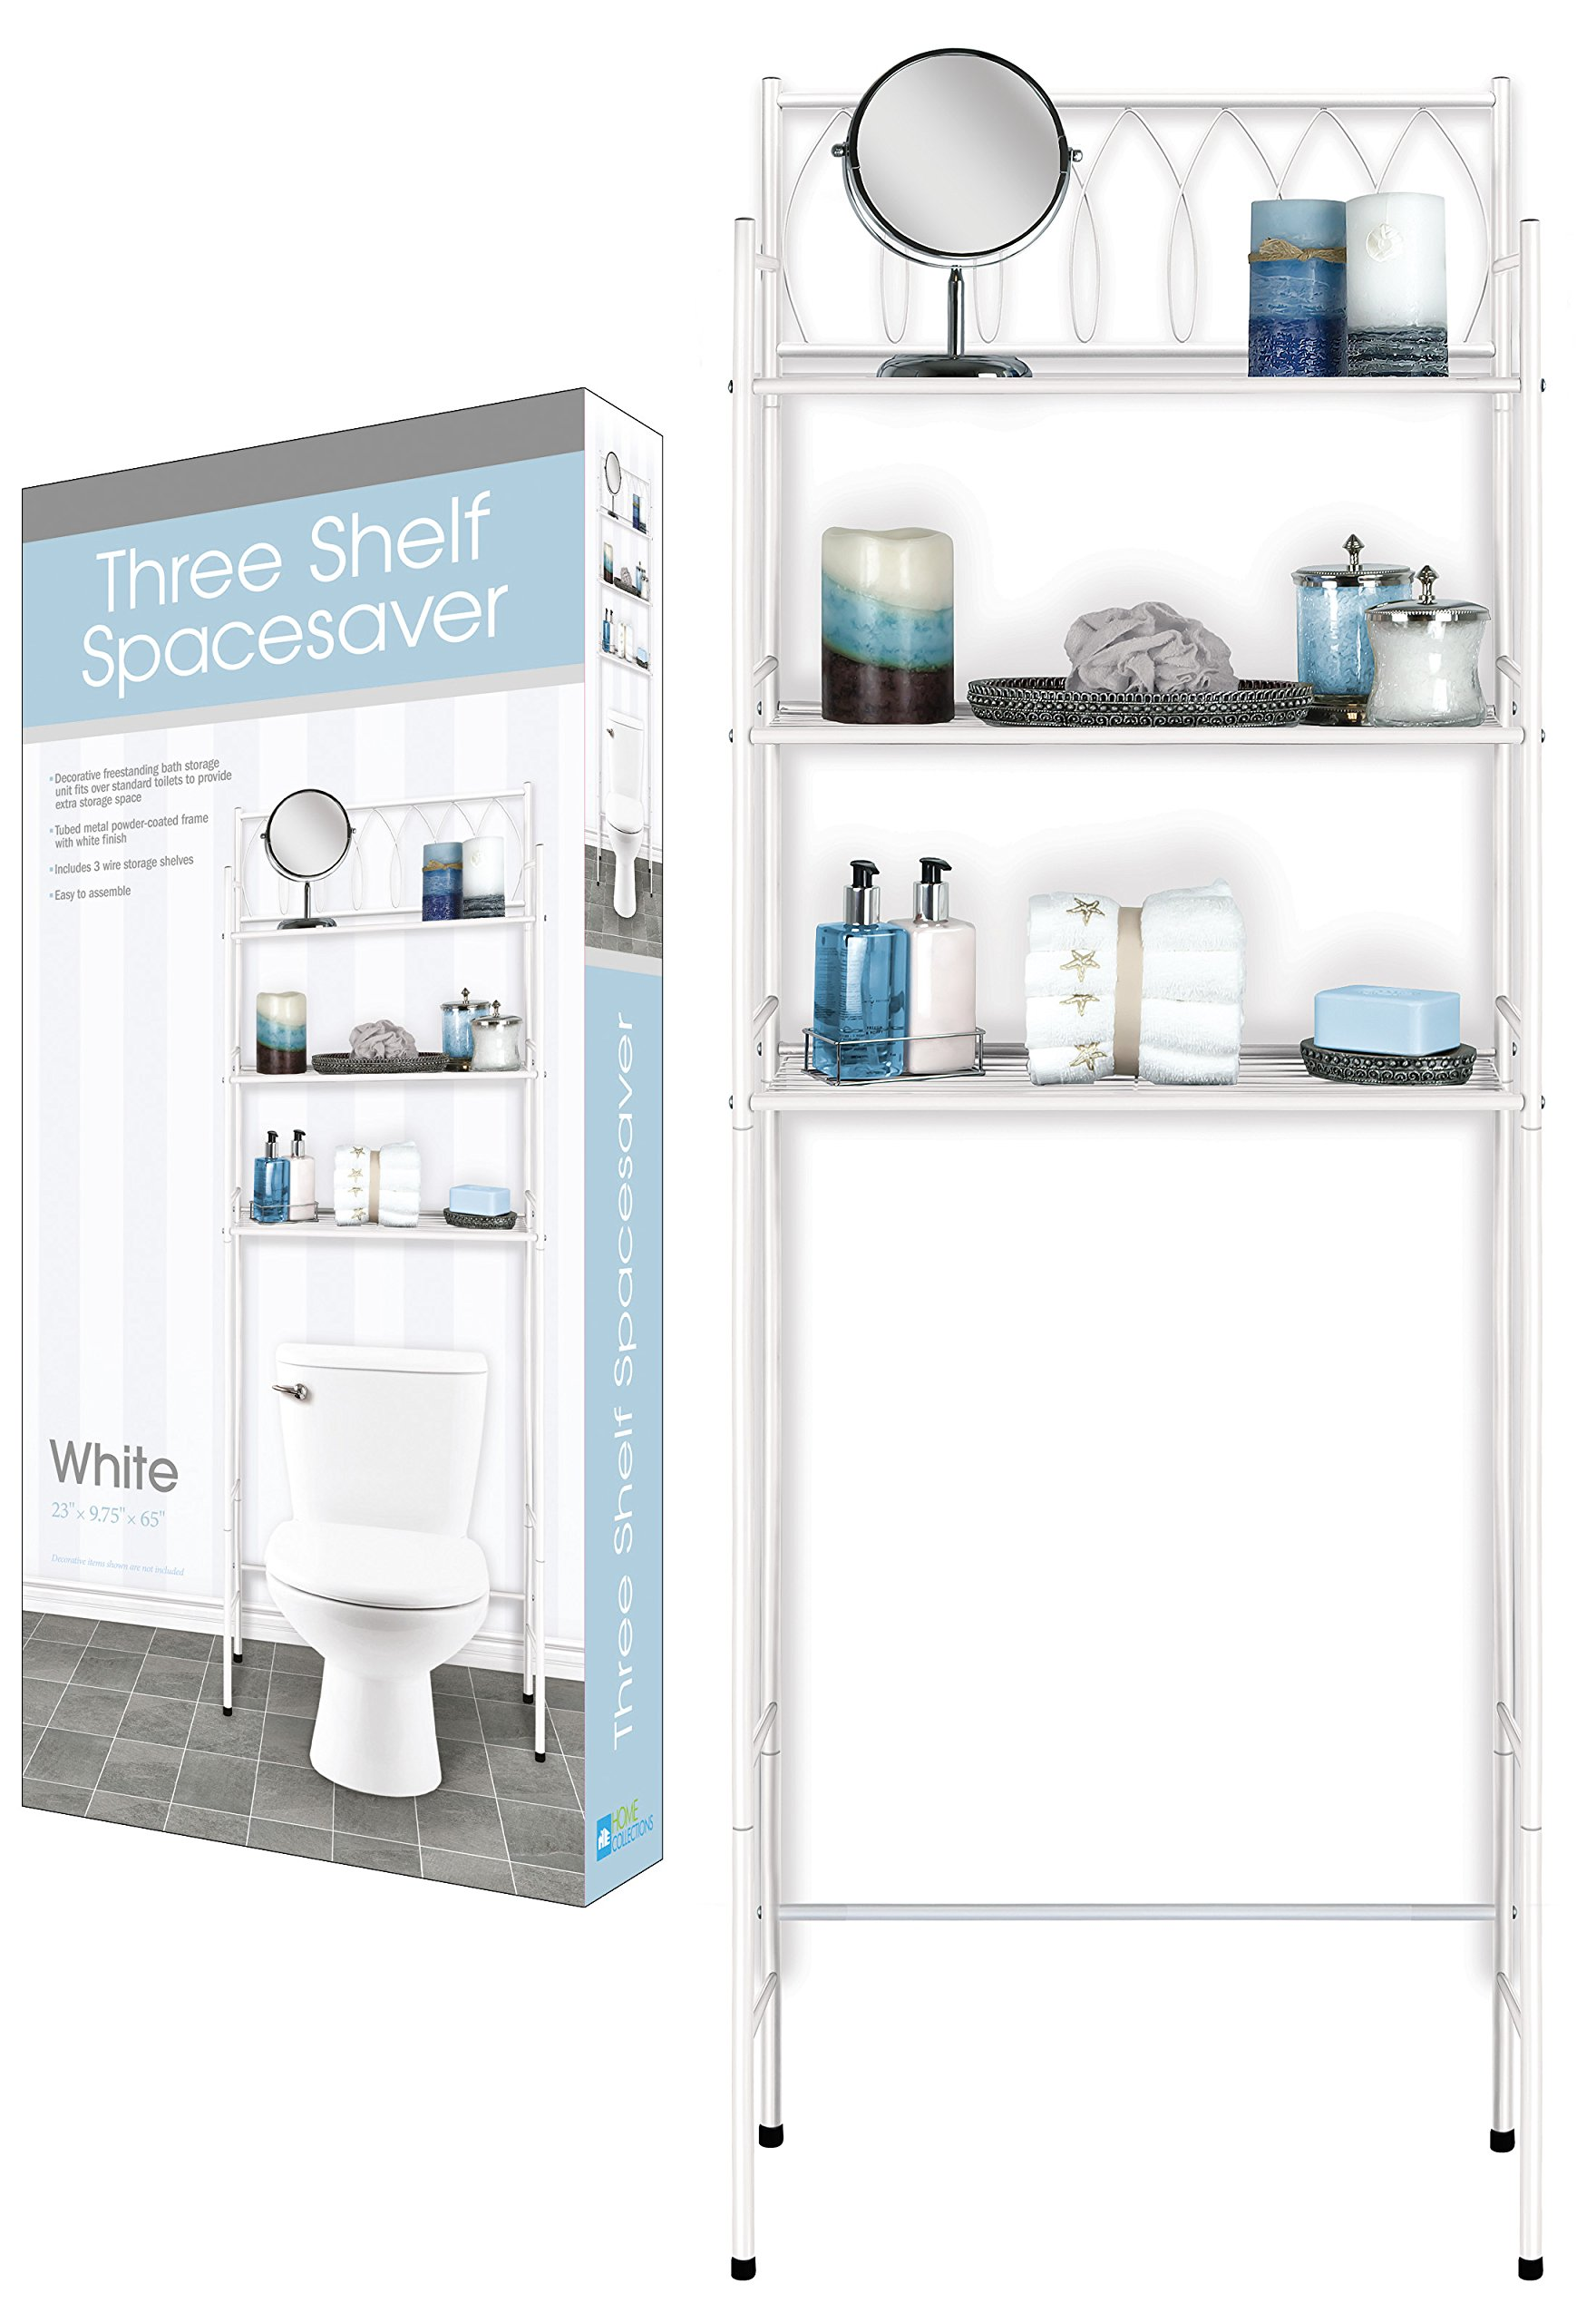 DINY Home Collections 3 Shelf Over The Toilet Spacesaver Easy to Assemble (White) 65'' Tall